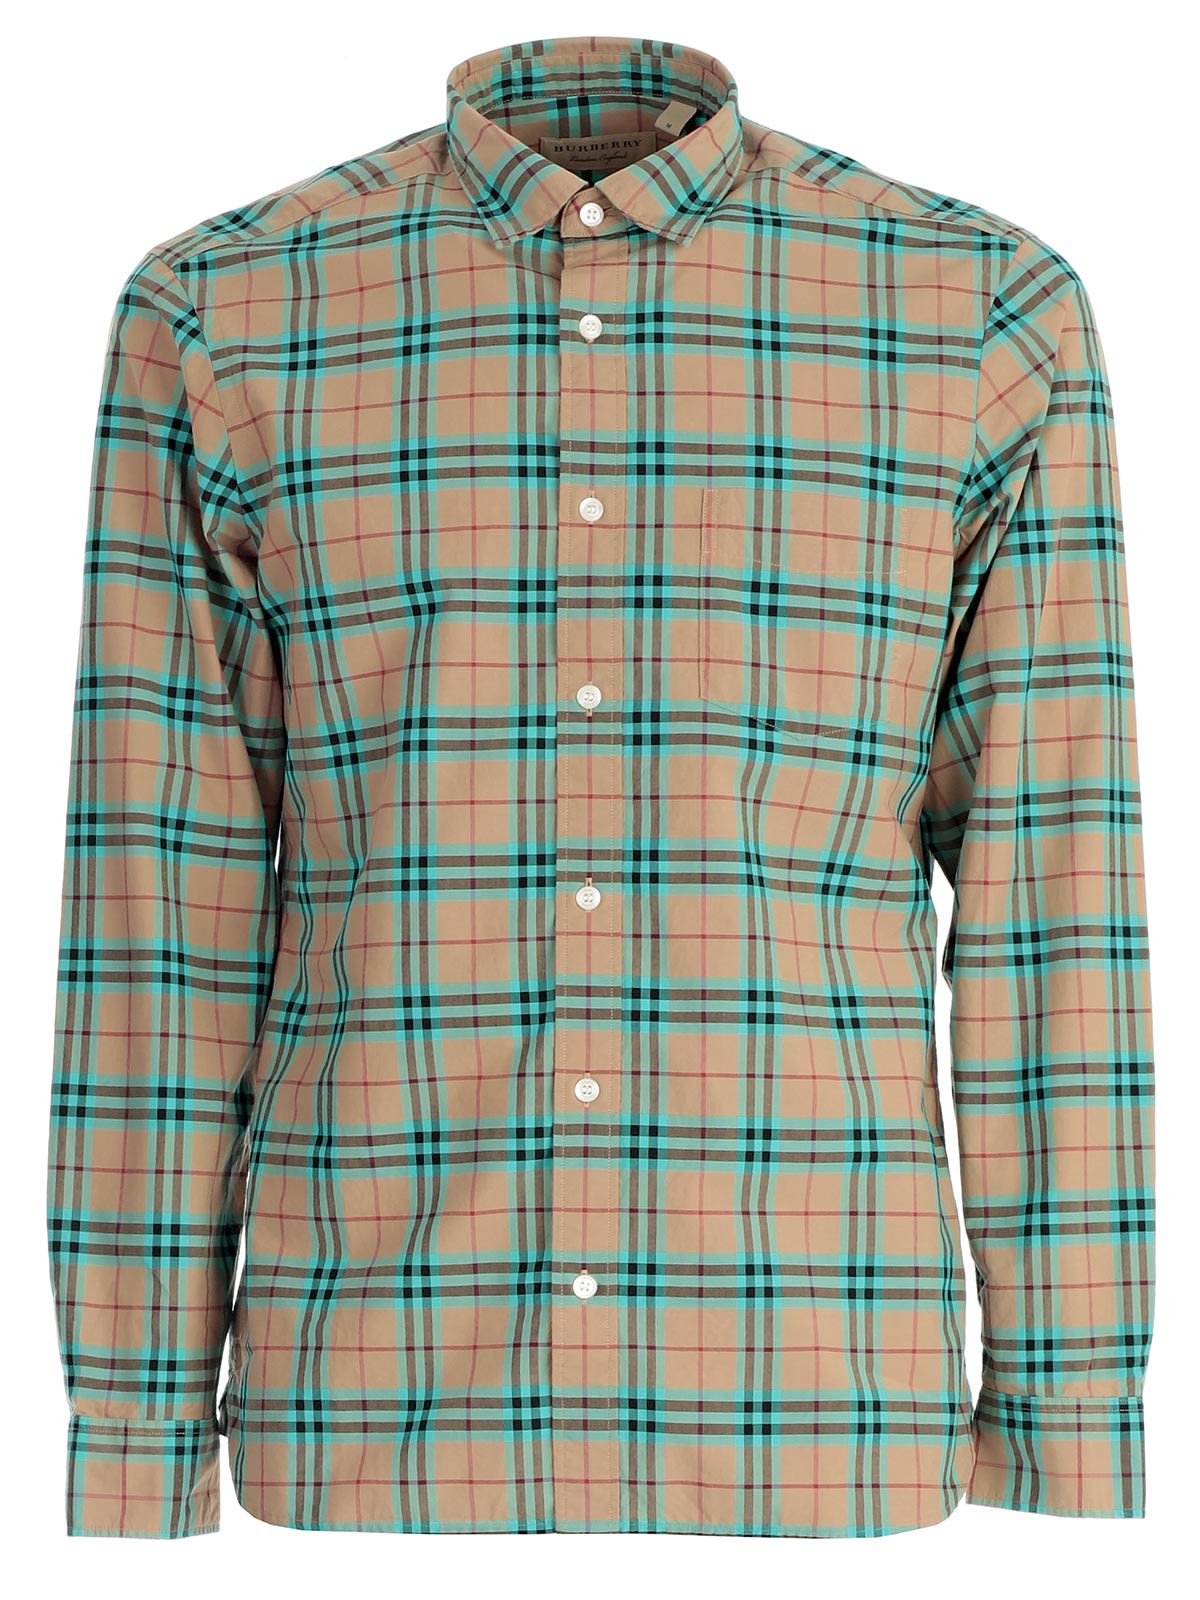 burberry plaid mens shirt